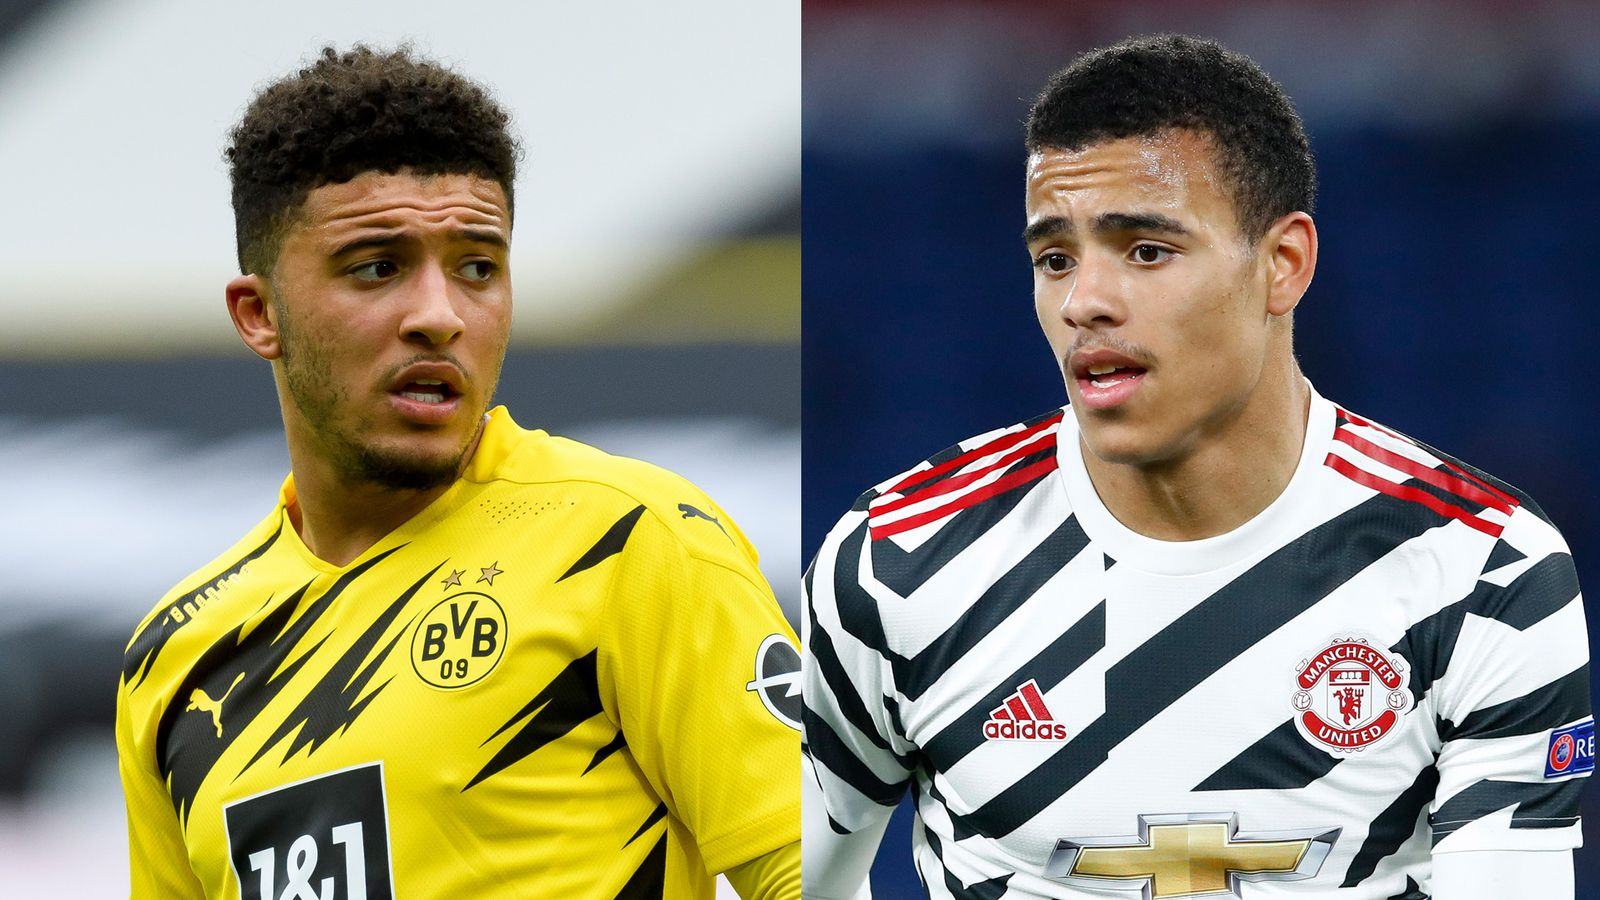 Jadon Sancho vs Mason Greenwood: Who is more likely to be part of England's Euro 2020 squad?